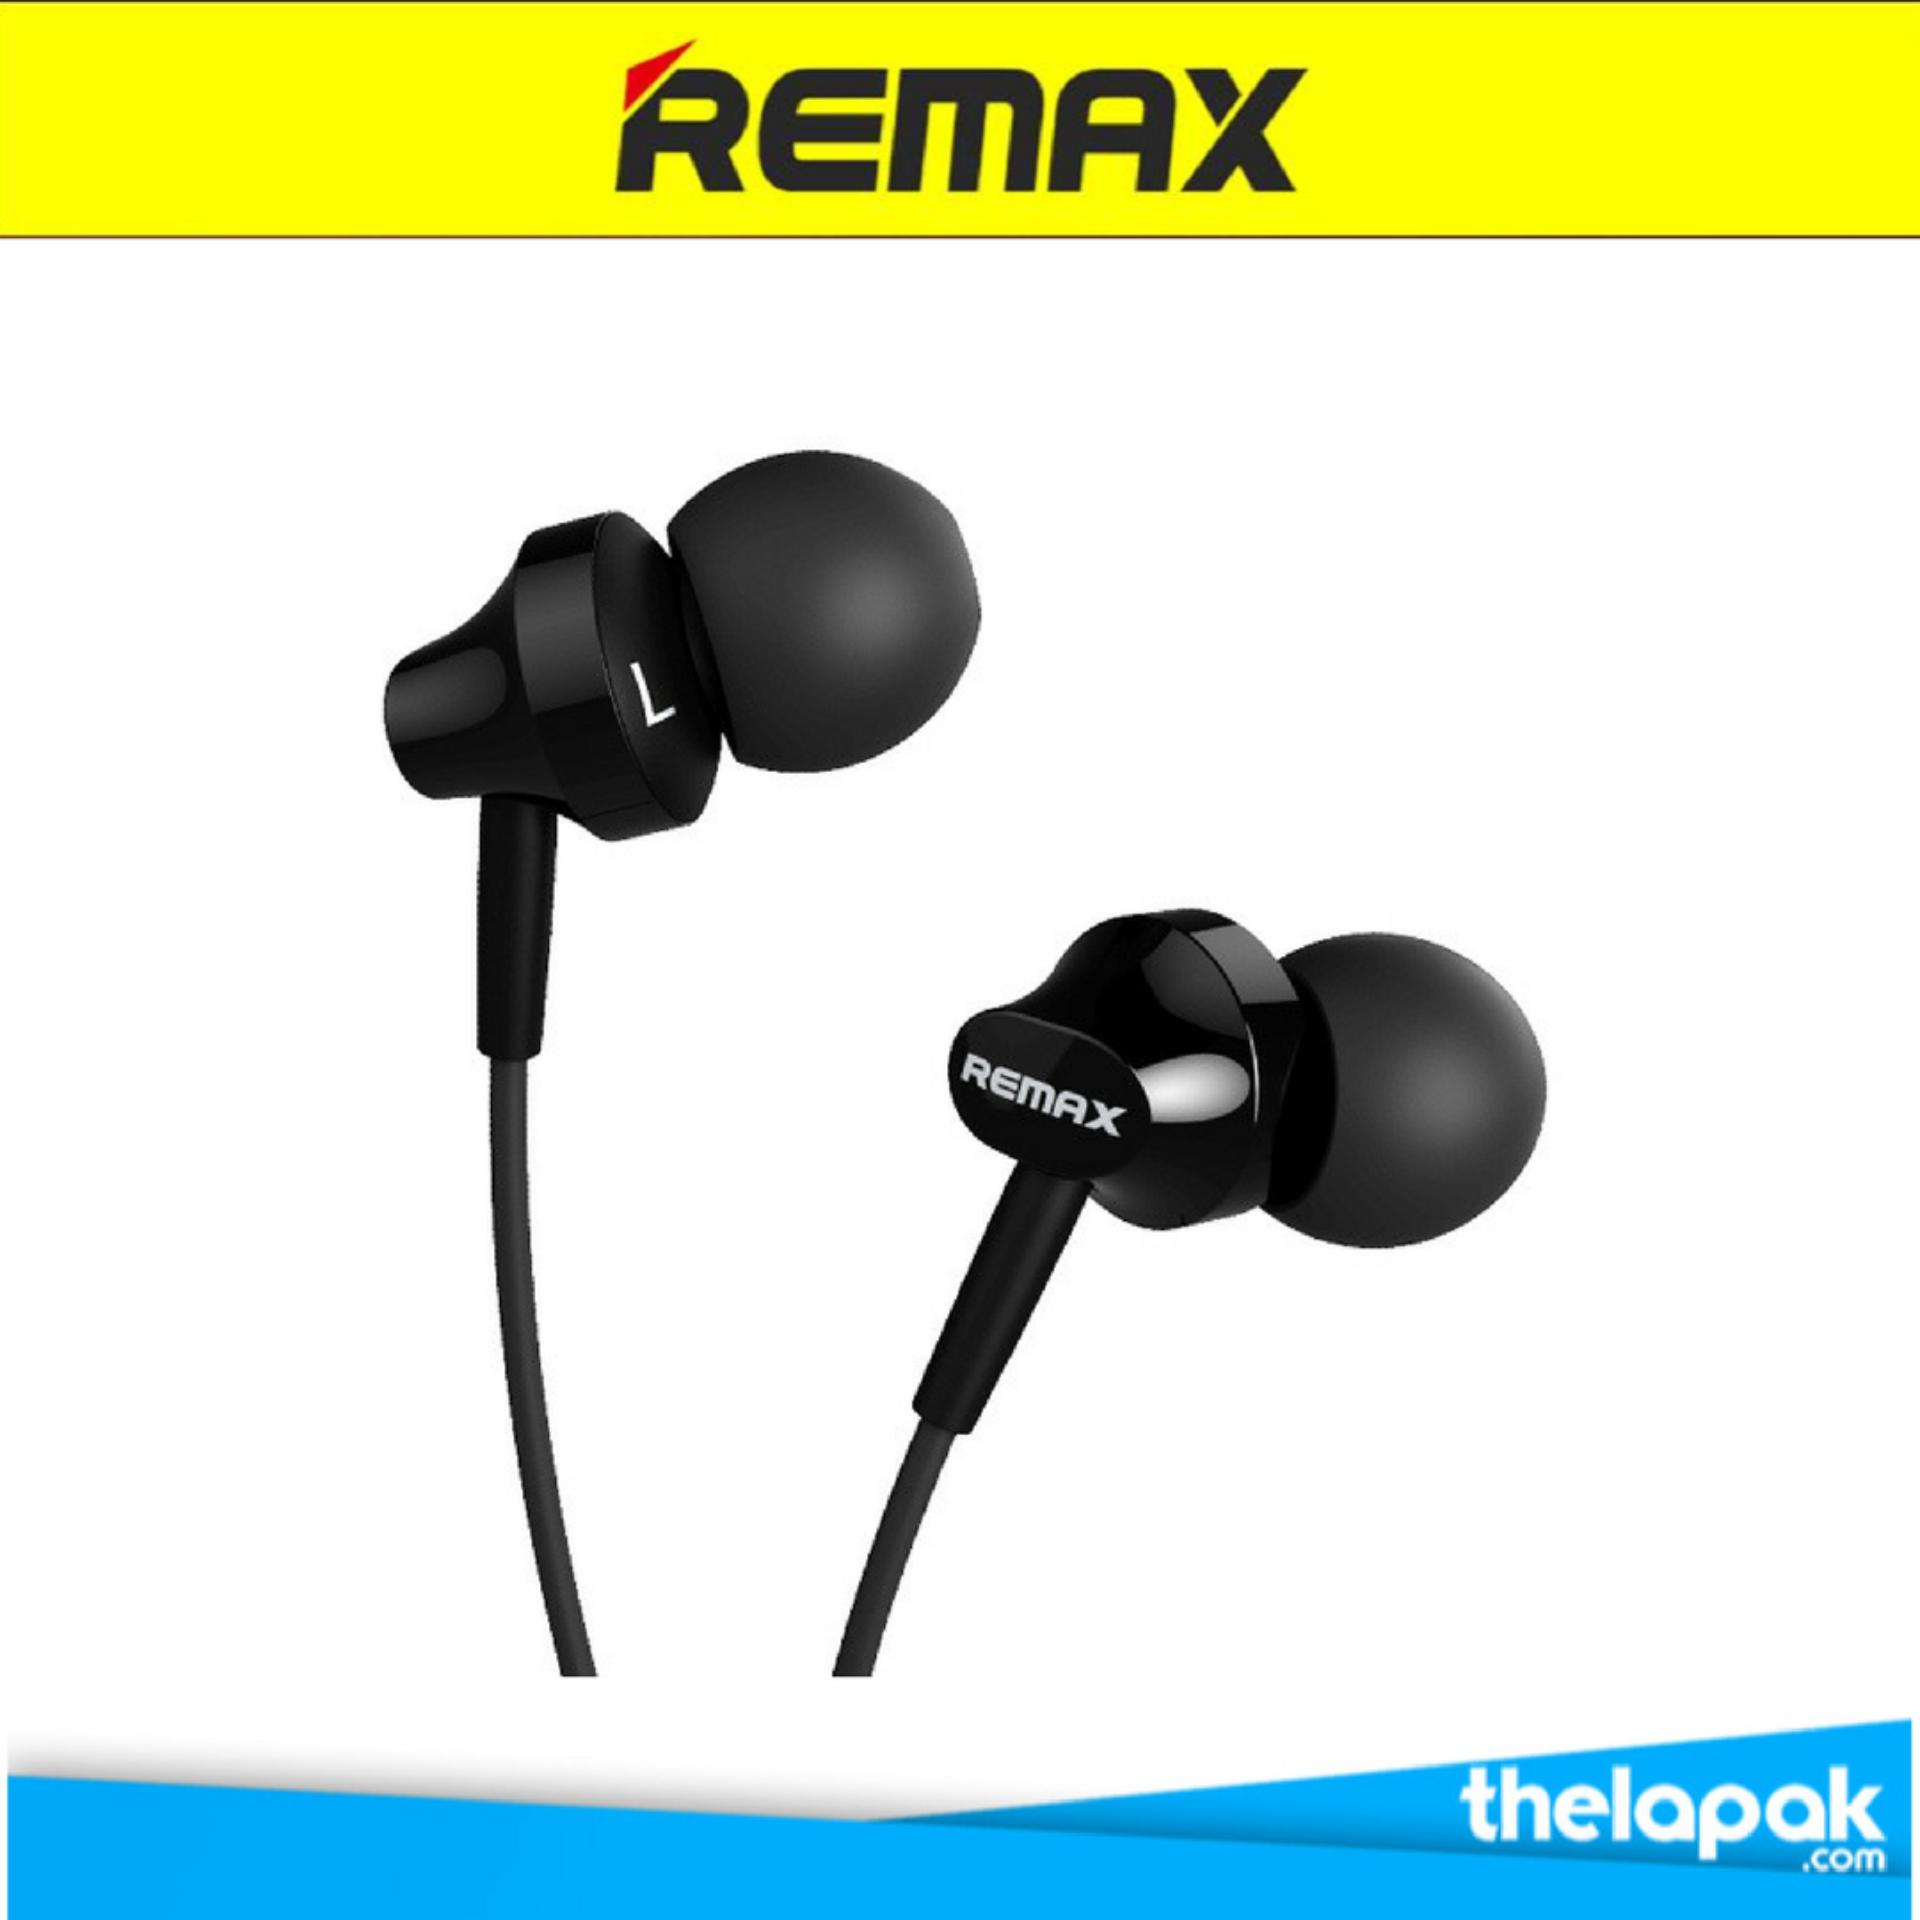 Jual Remax Earphone Headset Rm501 For Iphone Android Hitam Grosir